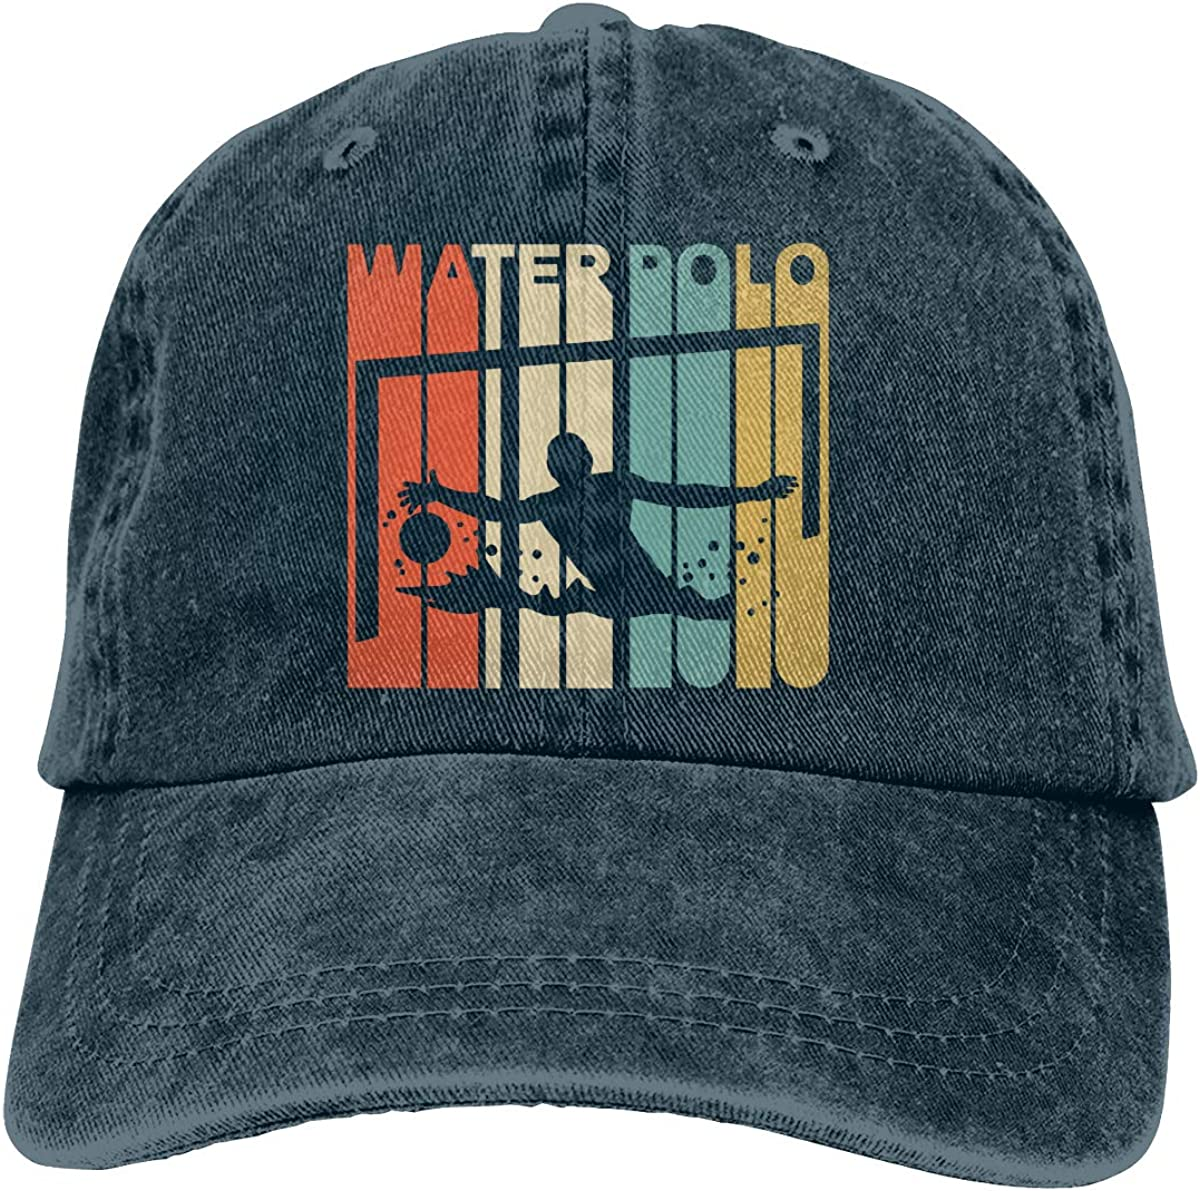 Vintage Style Water Polo Mens Womens Adjustable Yarn-Dyed Baseball Cap Sun Hat